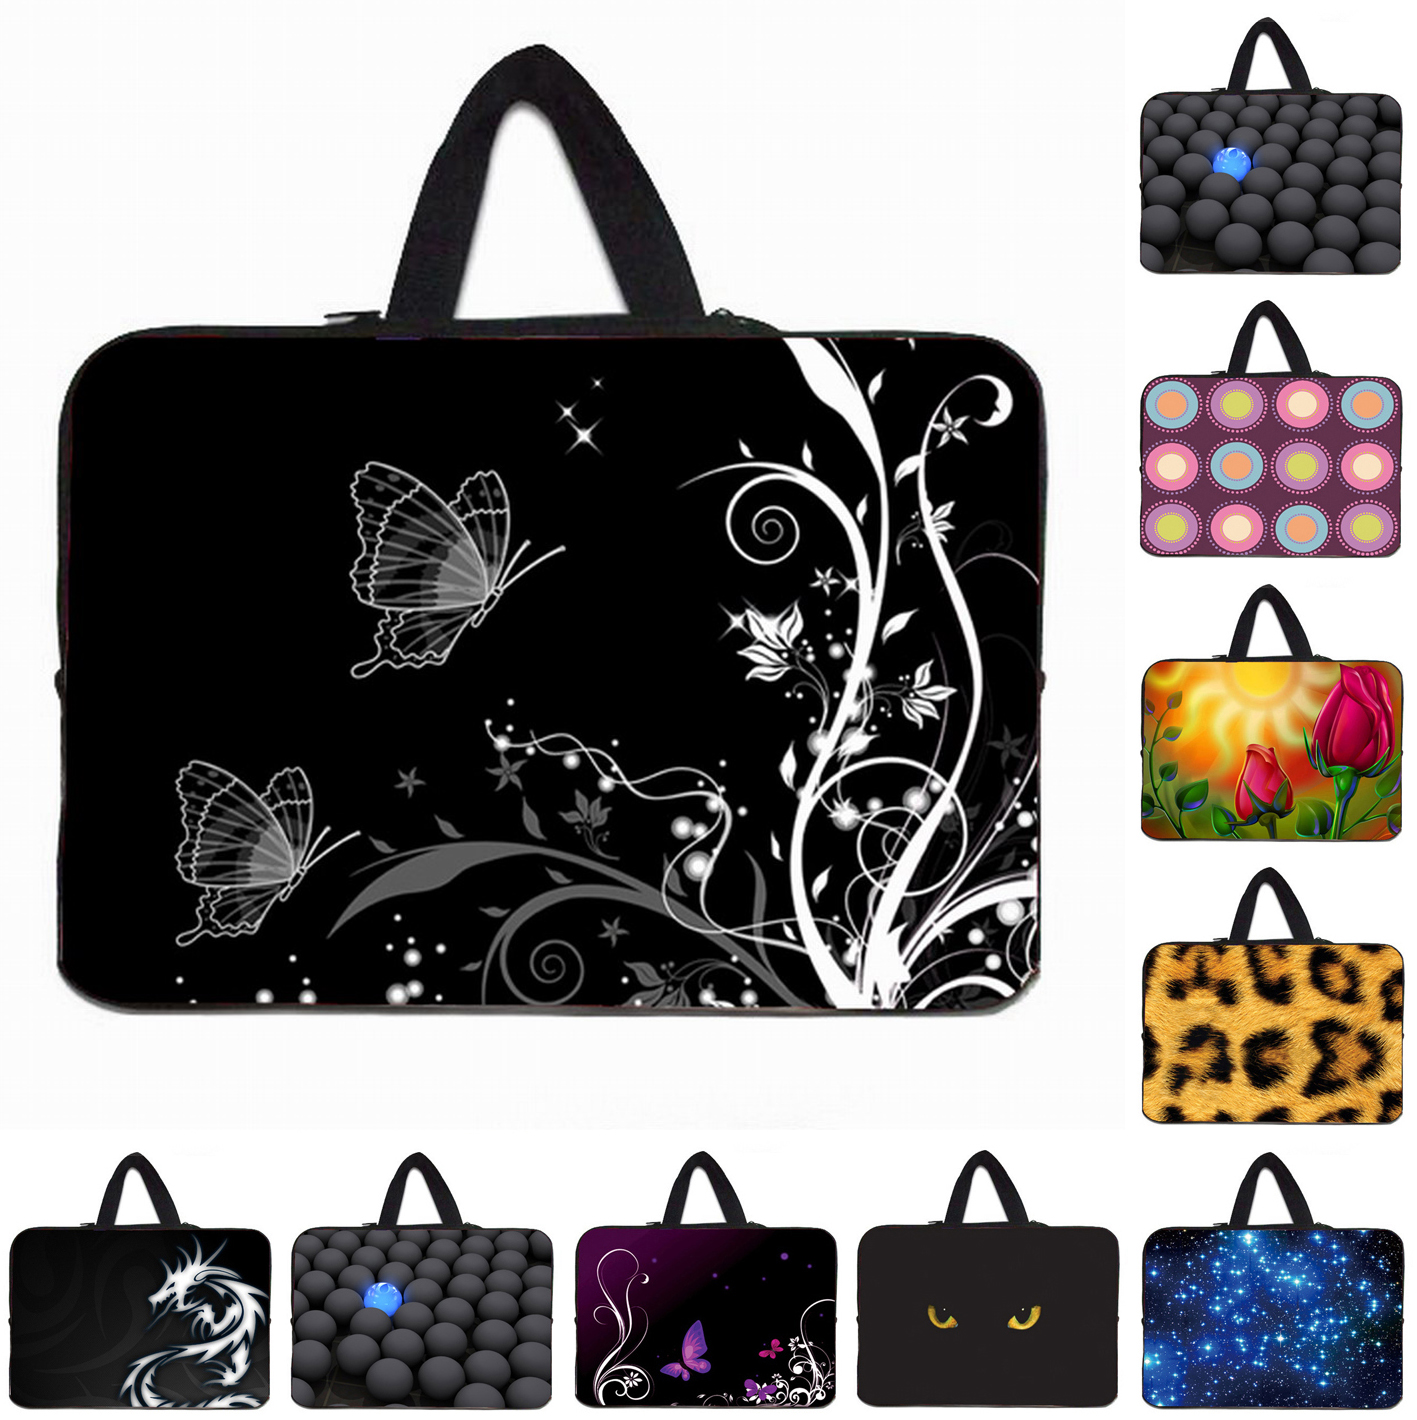 "Neoprene 10"" Laptop Bags For Women Elegant Floral Notebook Zipper Cases Pouch Bags Cover For 9.7 12 13 13.3 14 15 17 Inch Tablet"